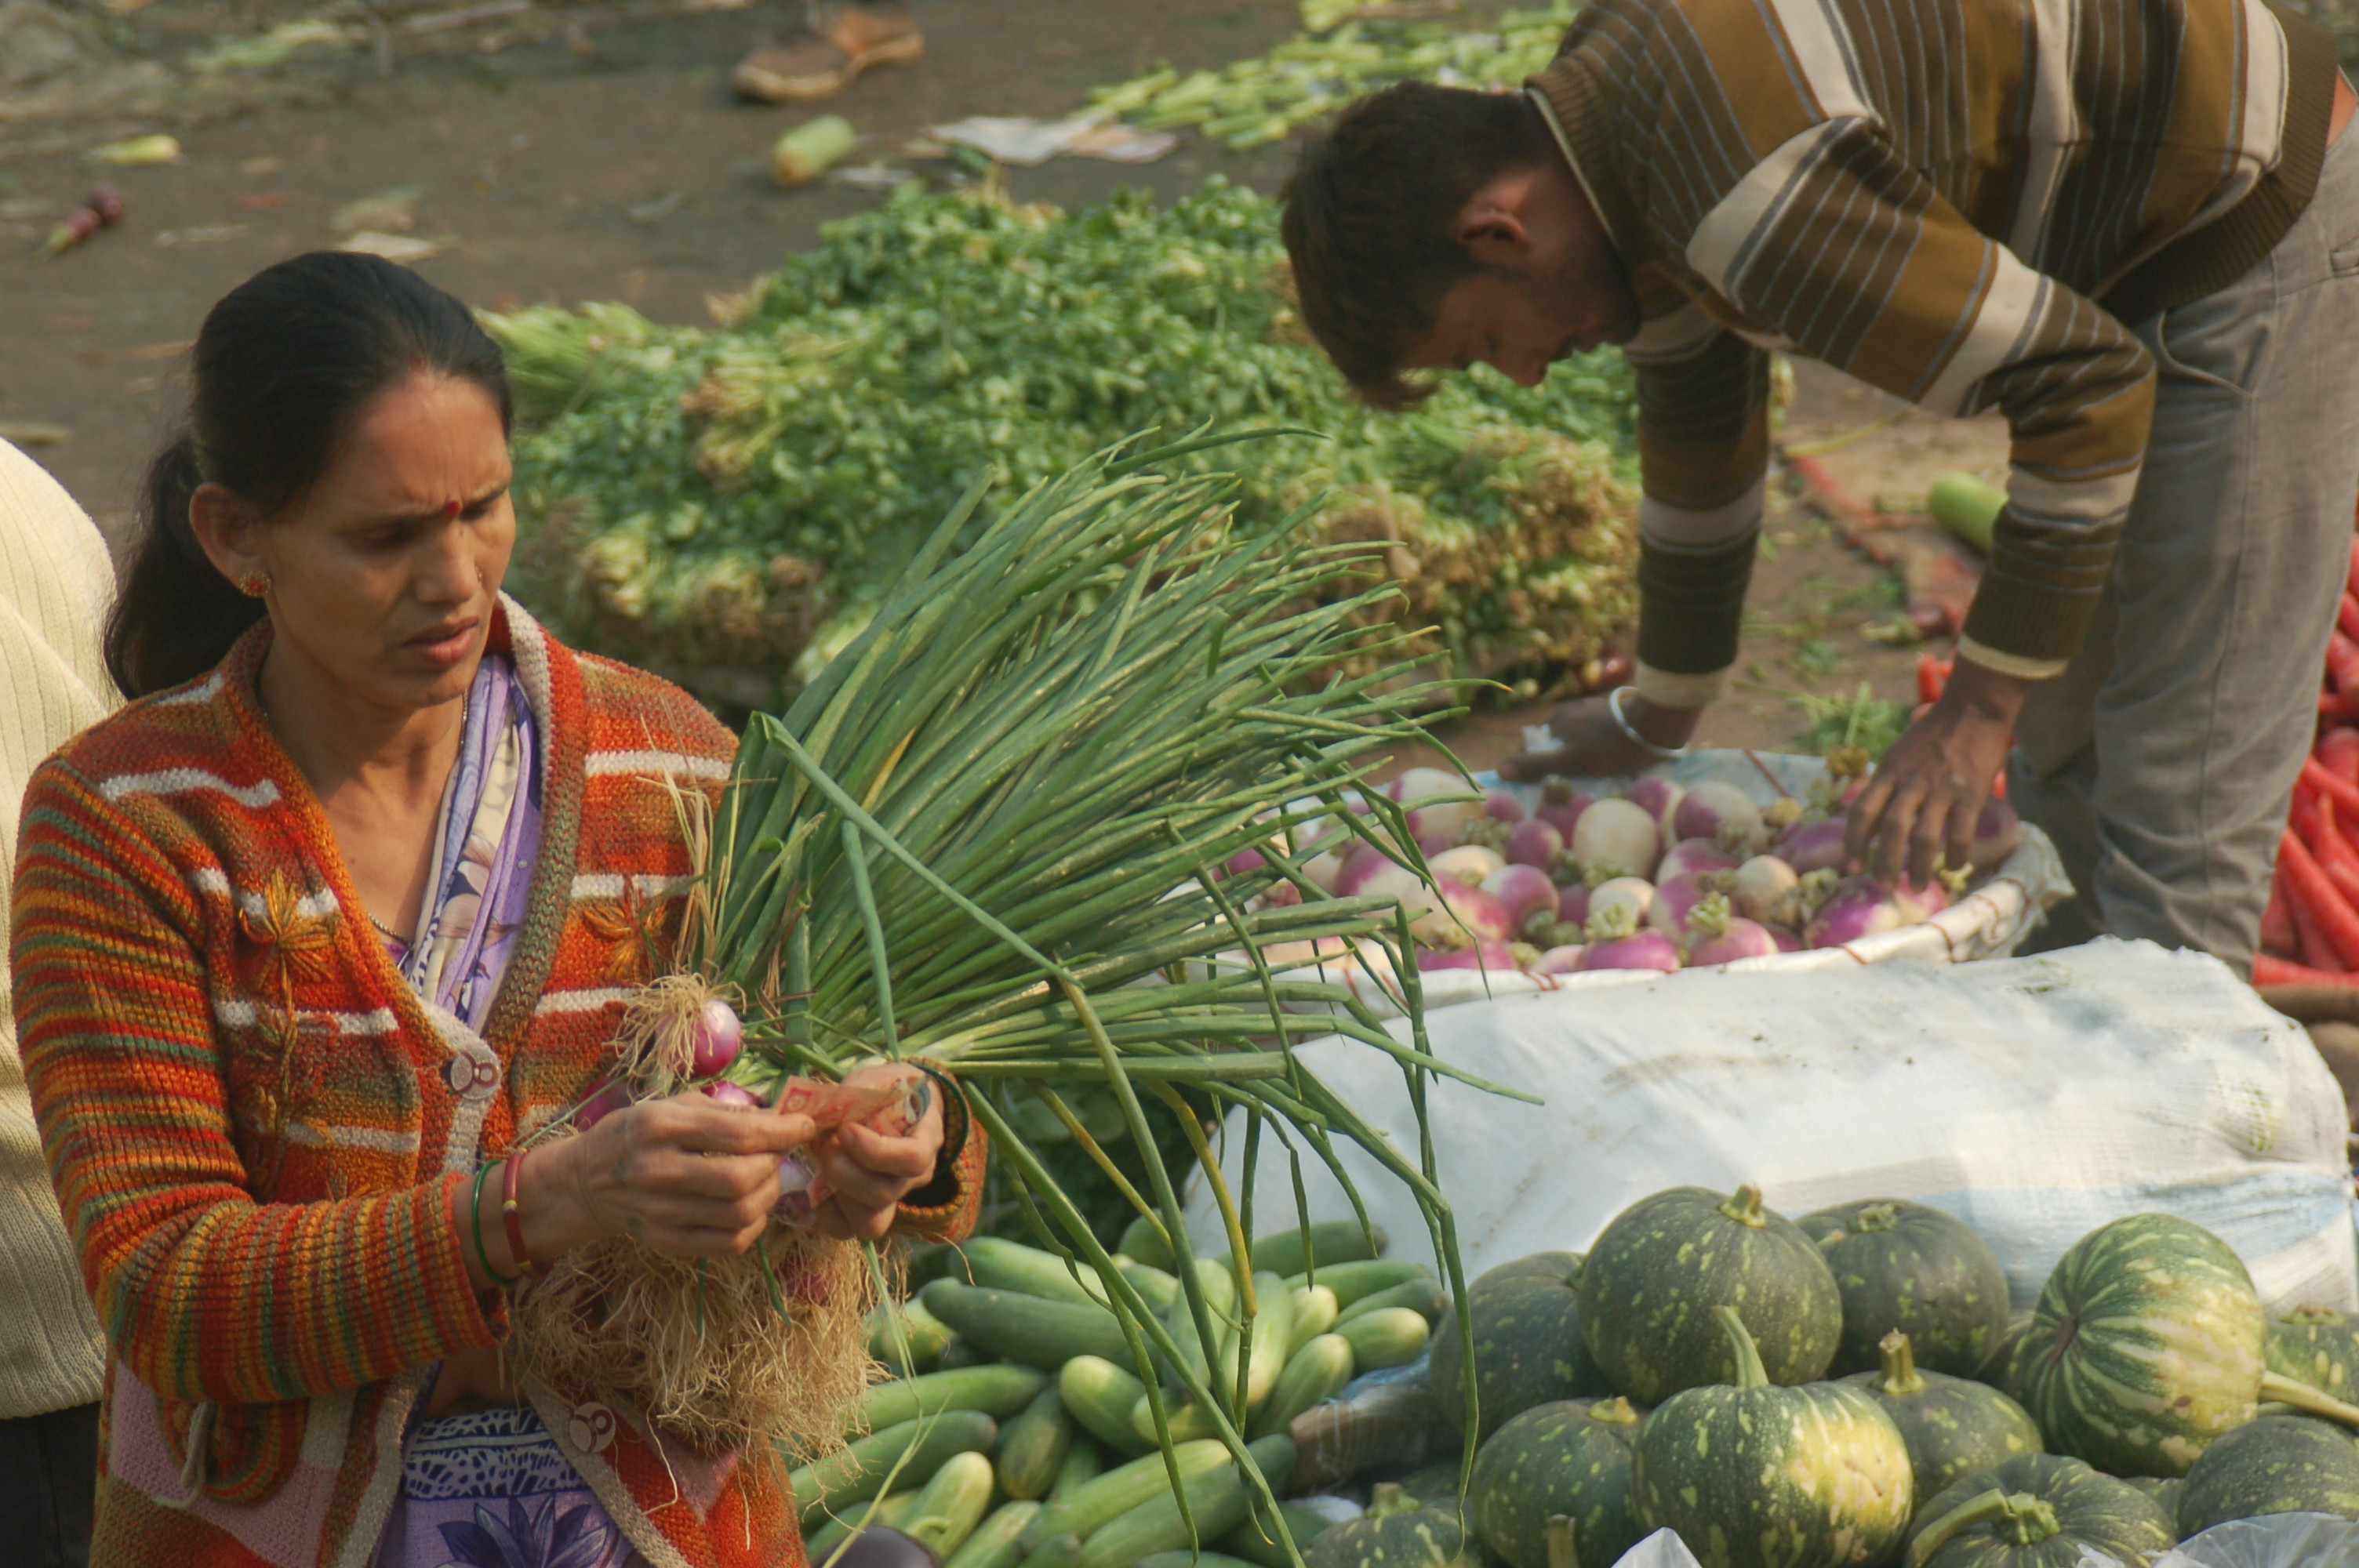 Webinar to Look at Interventions in Value Chains to Improve Diets of Low-Income Populations